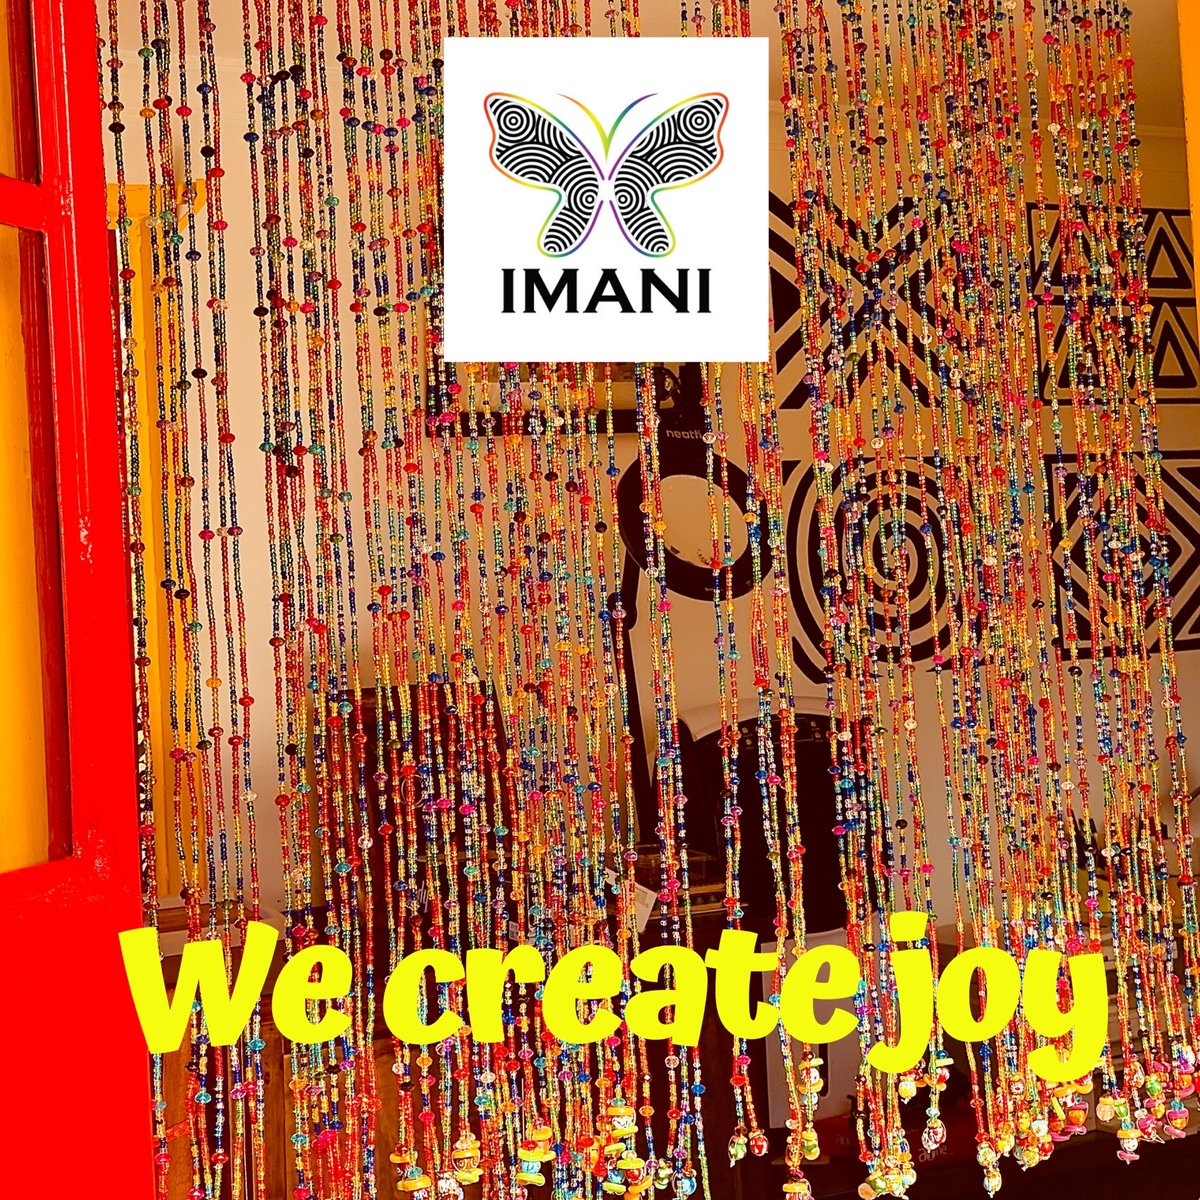 """like the rainbow after the rain joy will reveal itself after sorrow.."" Rupi Kaur  Bead curtain by Imani... DM for orders.  #jewelrydesigner #beadedcurtain #love #MadeinKenya #homeideas #twitterhappypic.twitter.com/qz1DQswQuD"